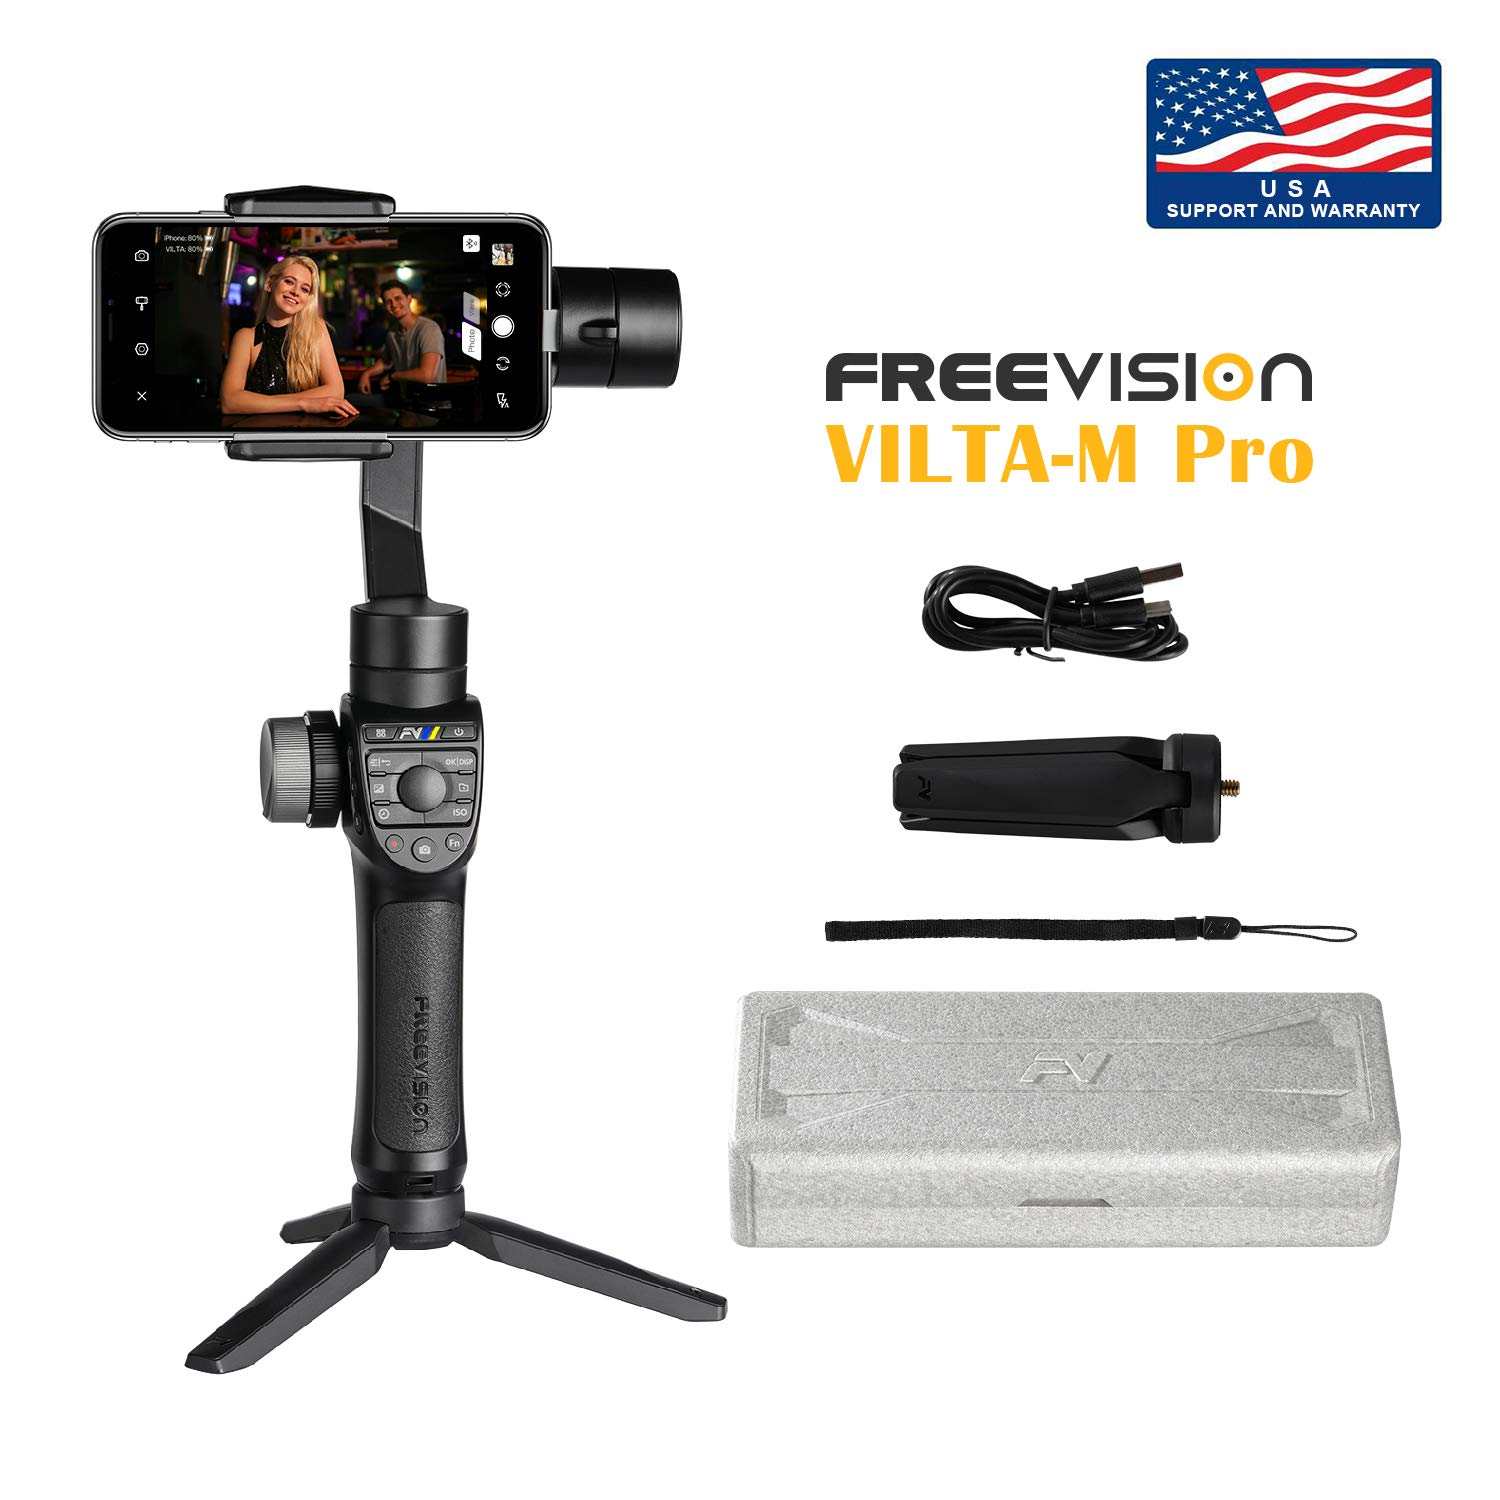 Official Site: Freevision Vilta-M Pro 3-Axis Handheld Stabilizer Gimbal for iPhone, Samsung, Premium Stability Performance, Double Wheel, Preset Mark A/B Focal Point, Wireless Charging